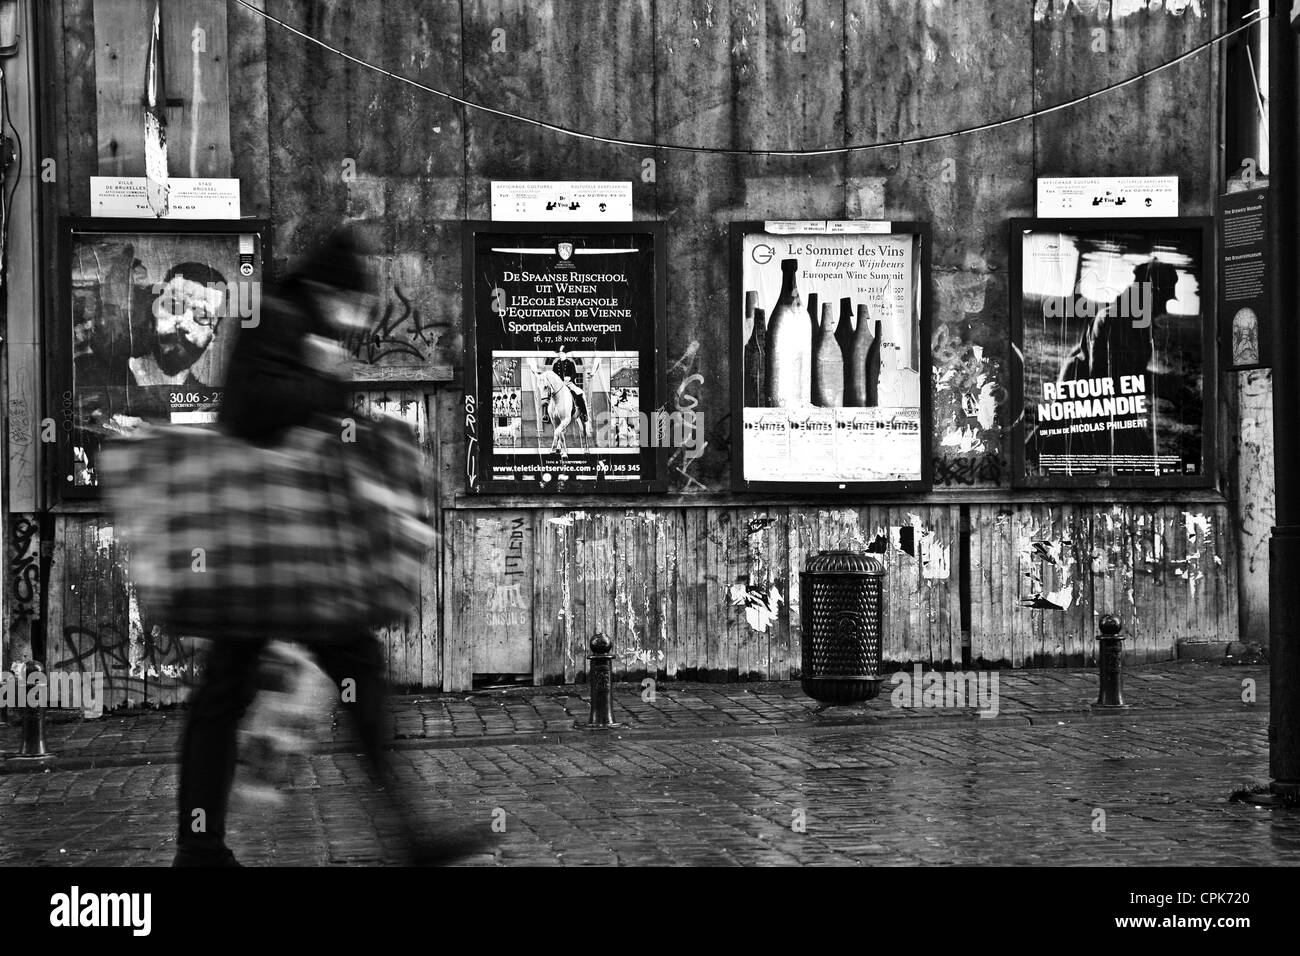 Scenes of Brussels downtown, people passing a wall with adverts. Shot at low shutter speed - Stock Image